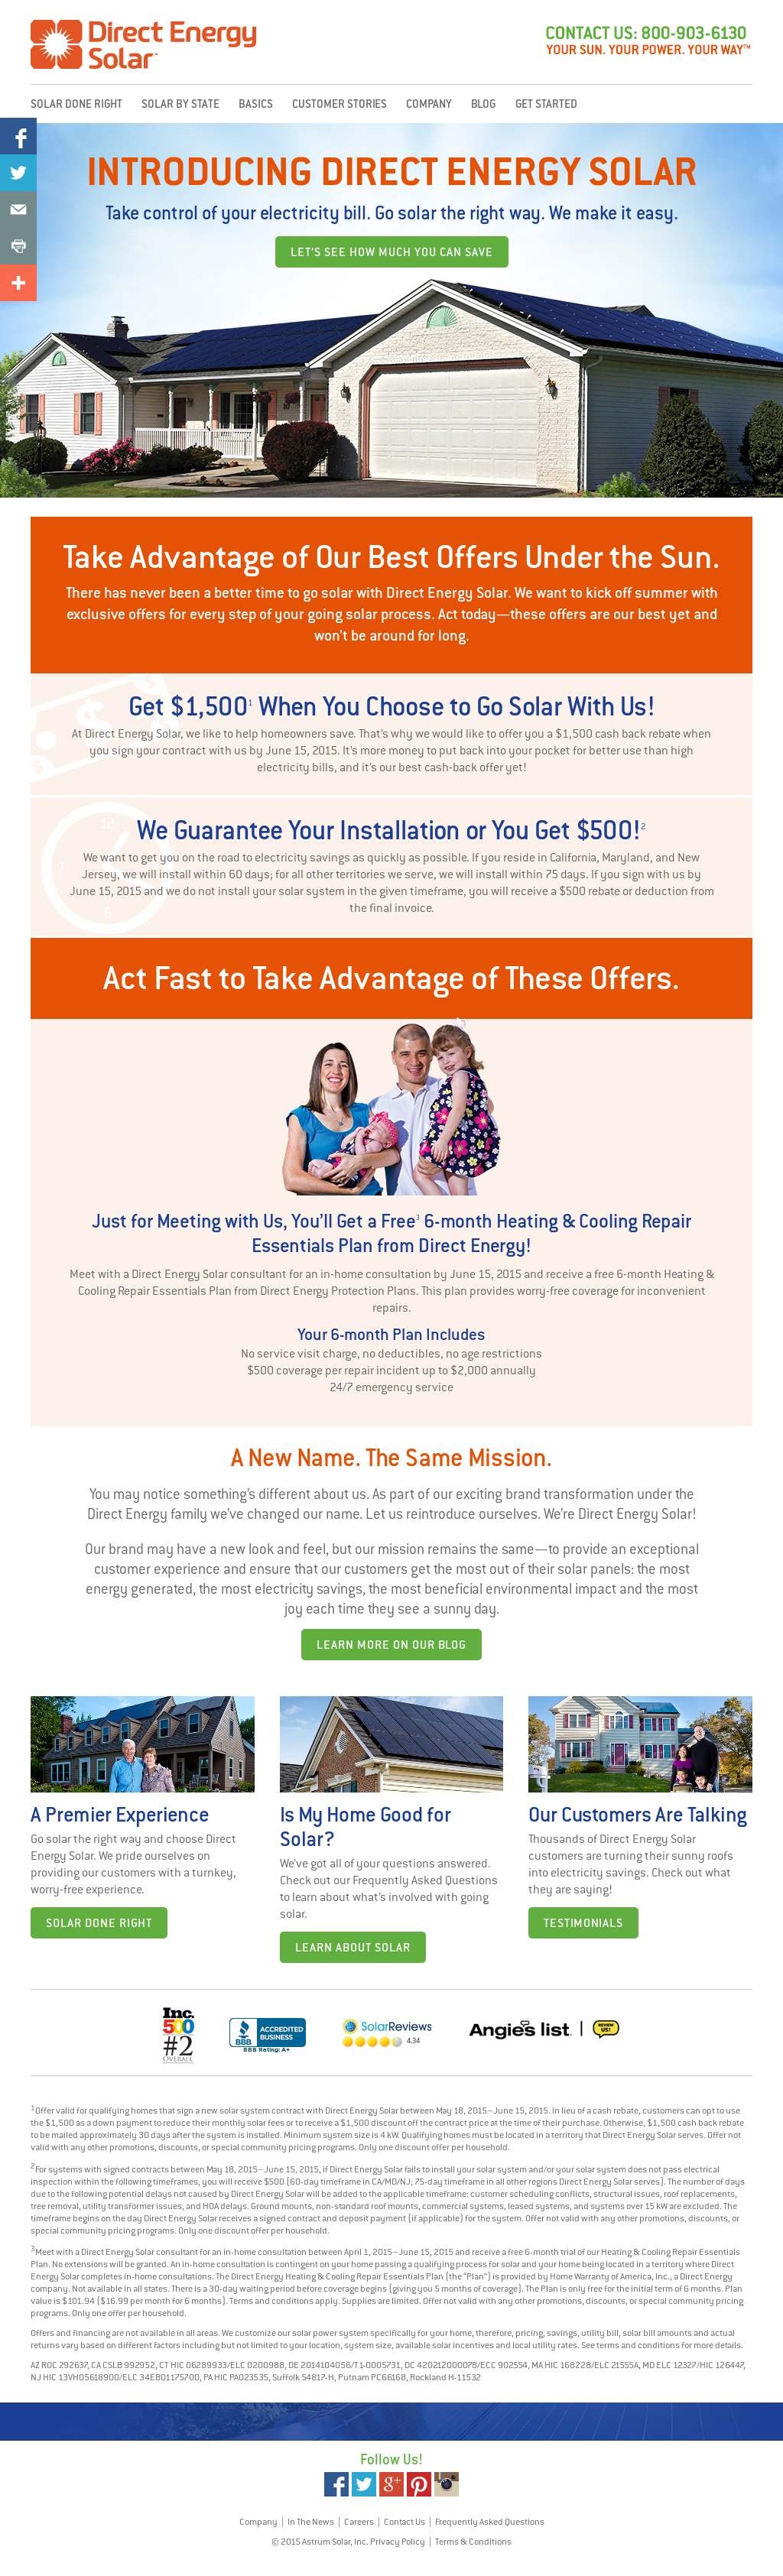 Direct Energy Pay As You Go >> Direct Energy Solar Competitors Revenue And Employees